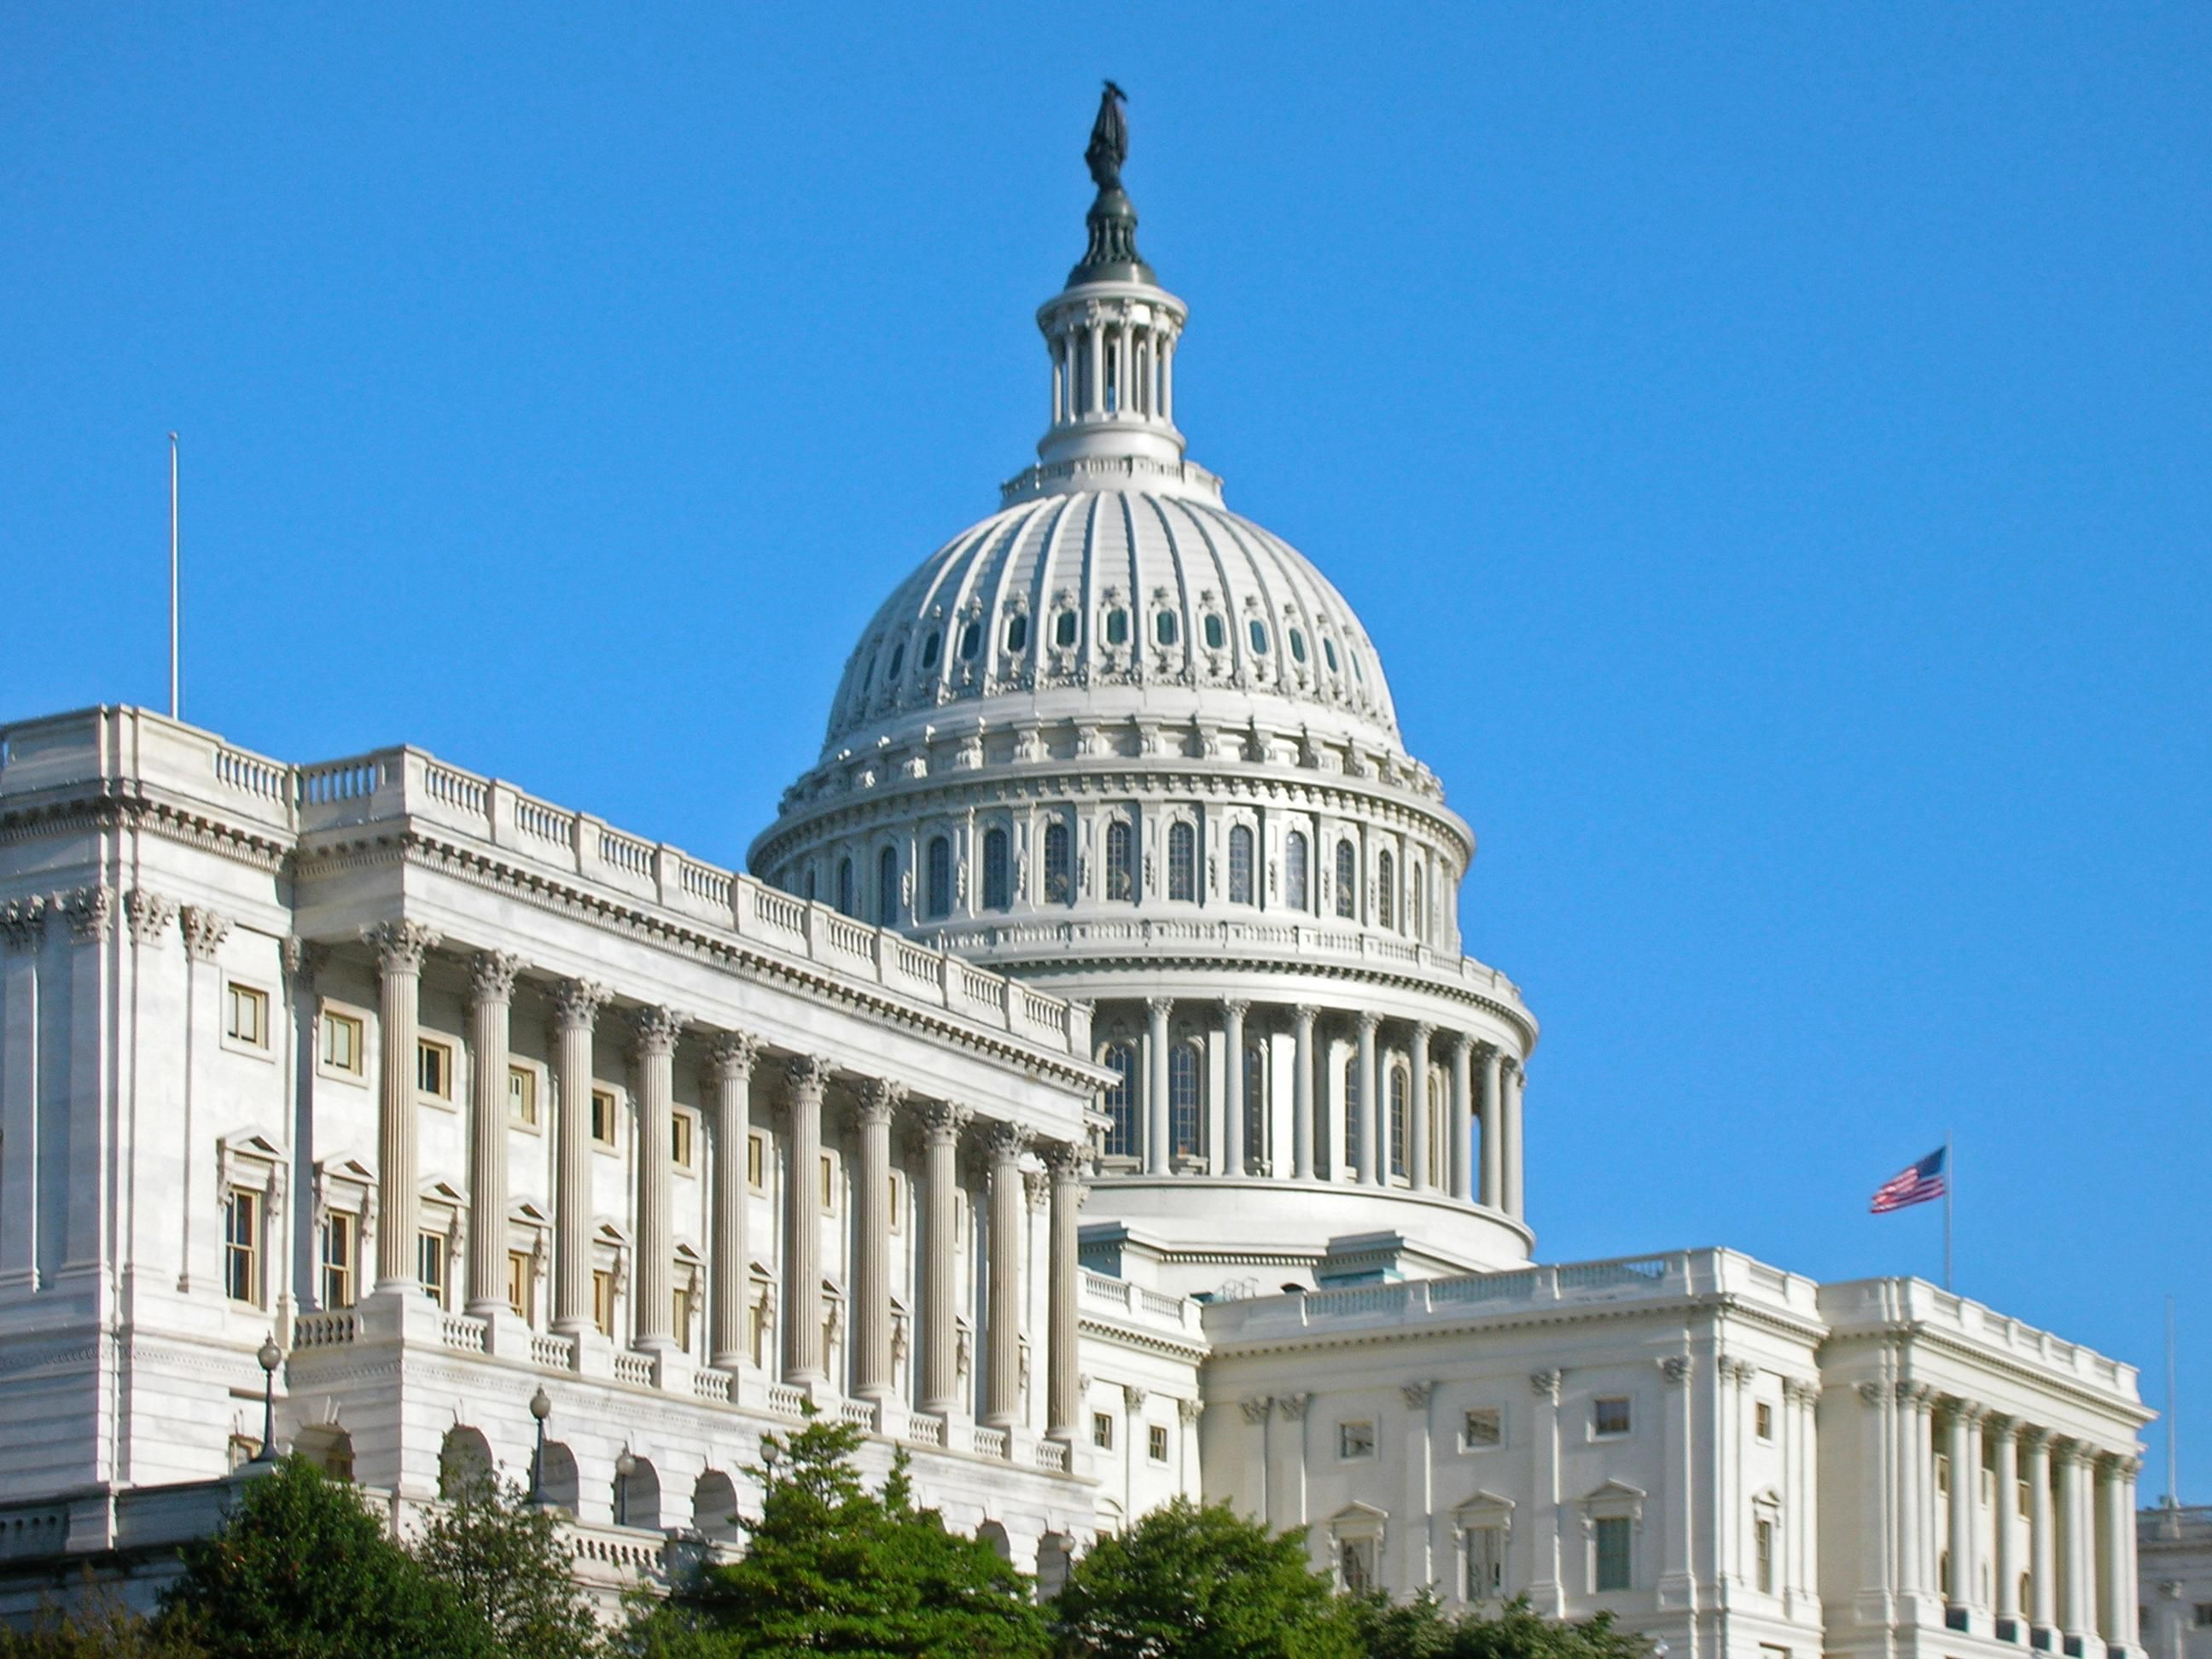 Visit the United States Capitol